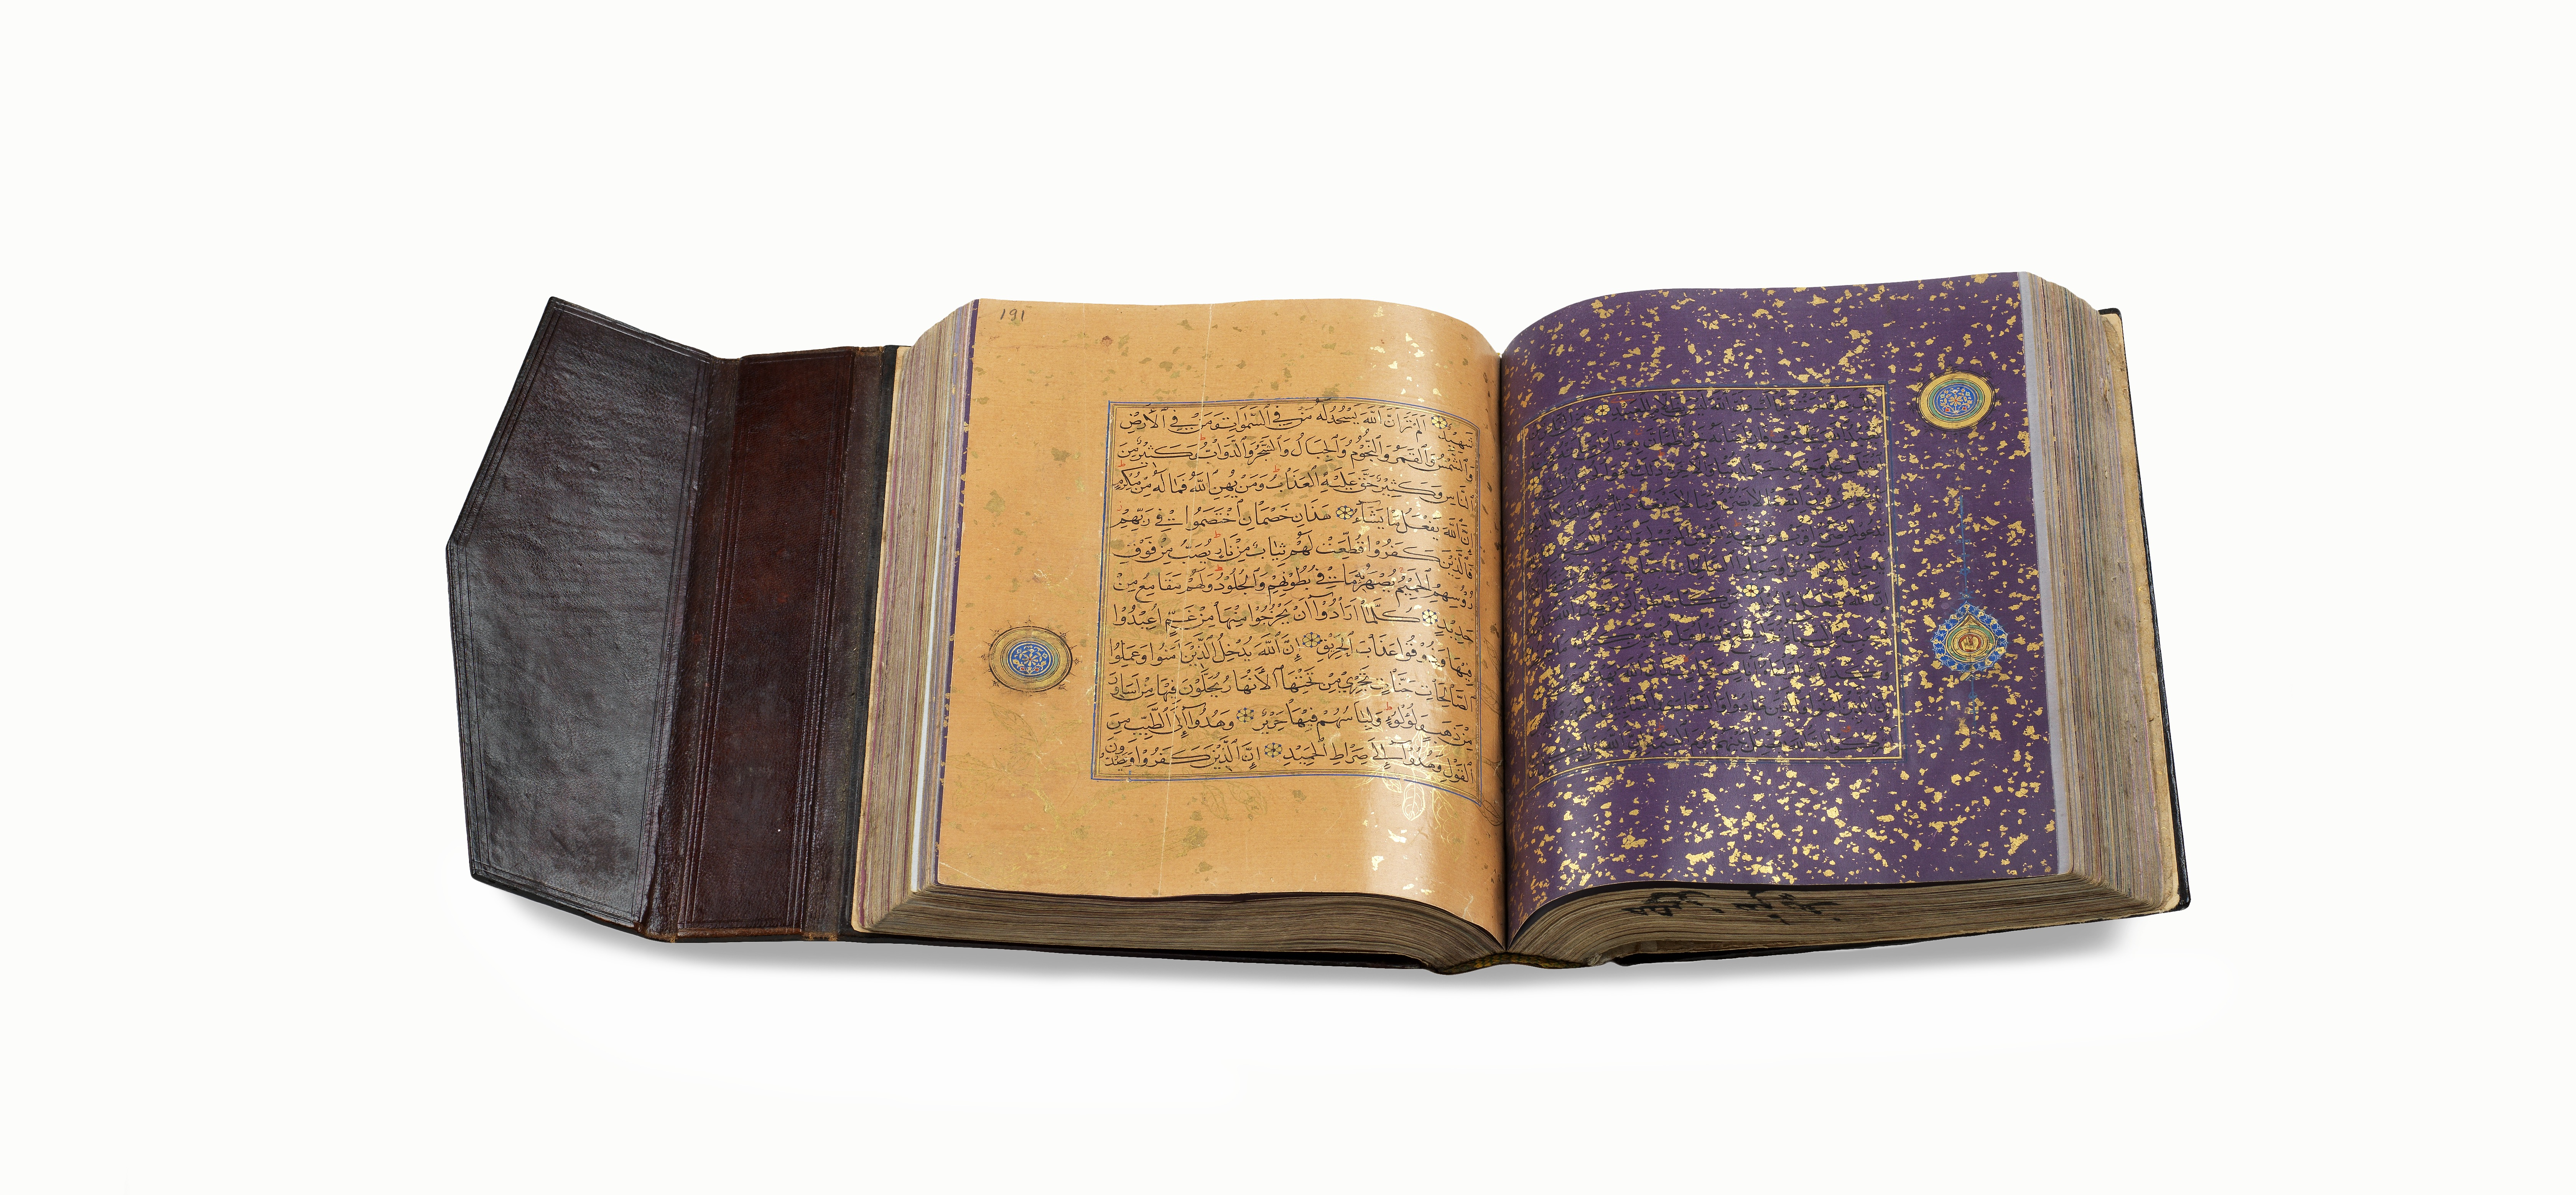 This Qur'an is from the Timurid period, circa 1440, and is decorated with gold leaf on colored paper.